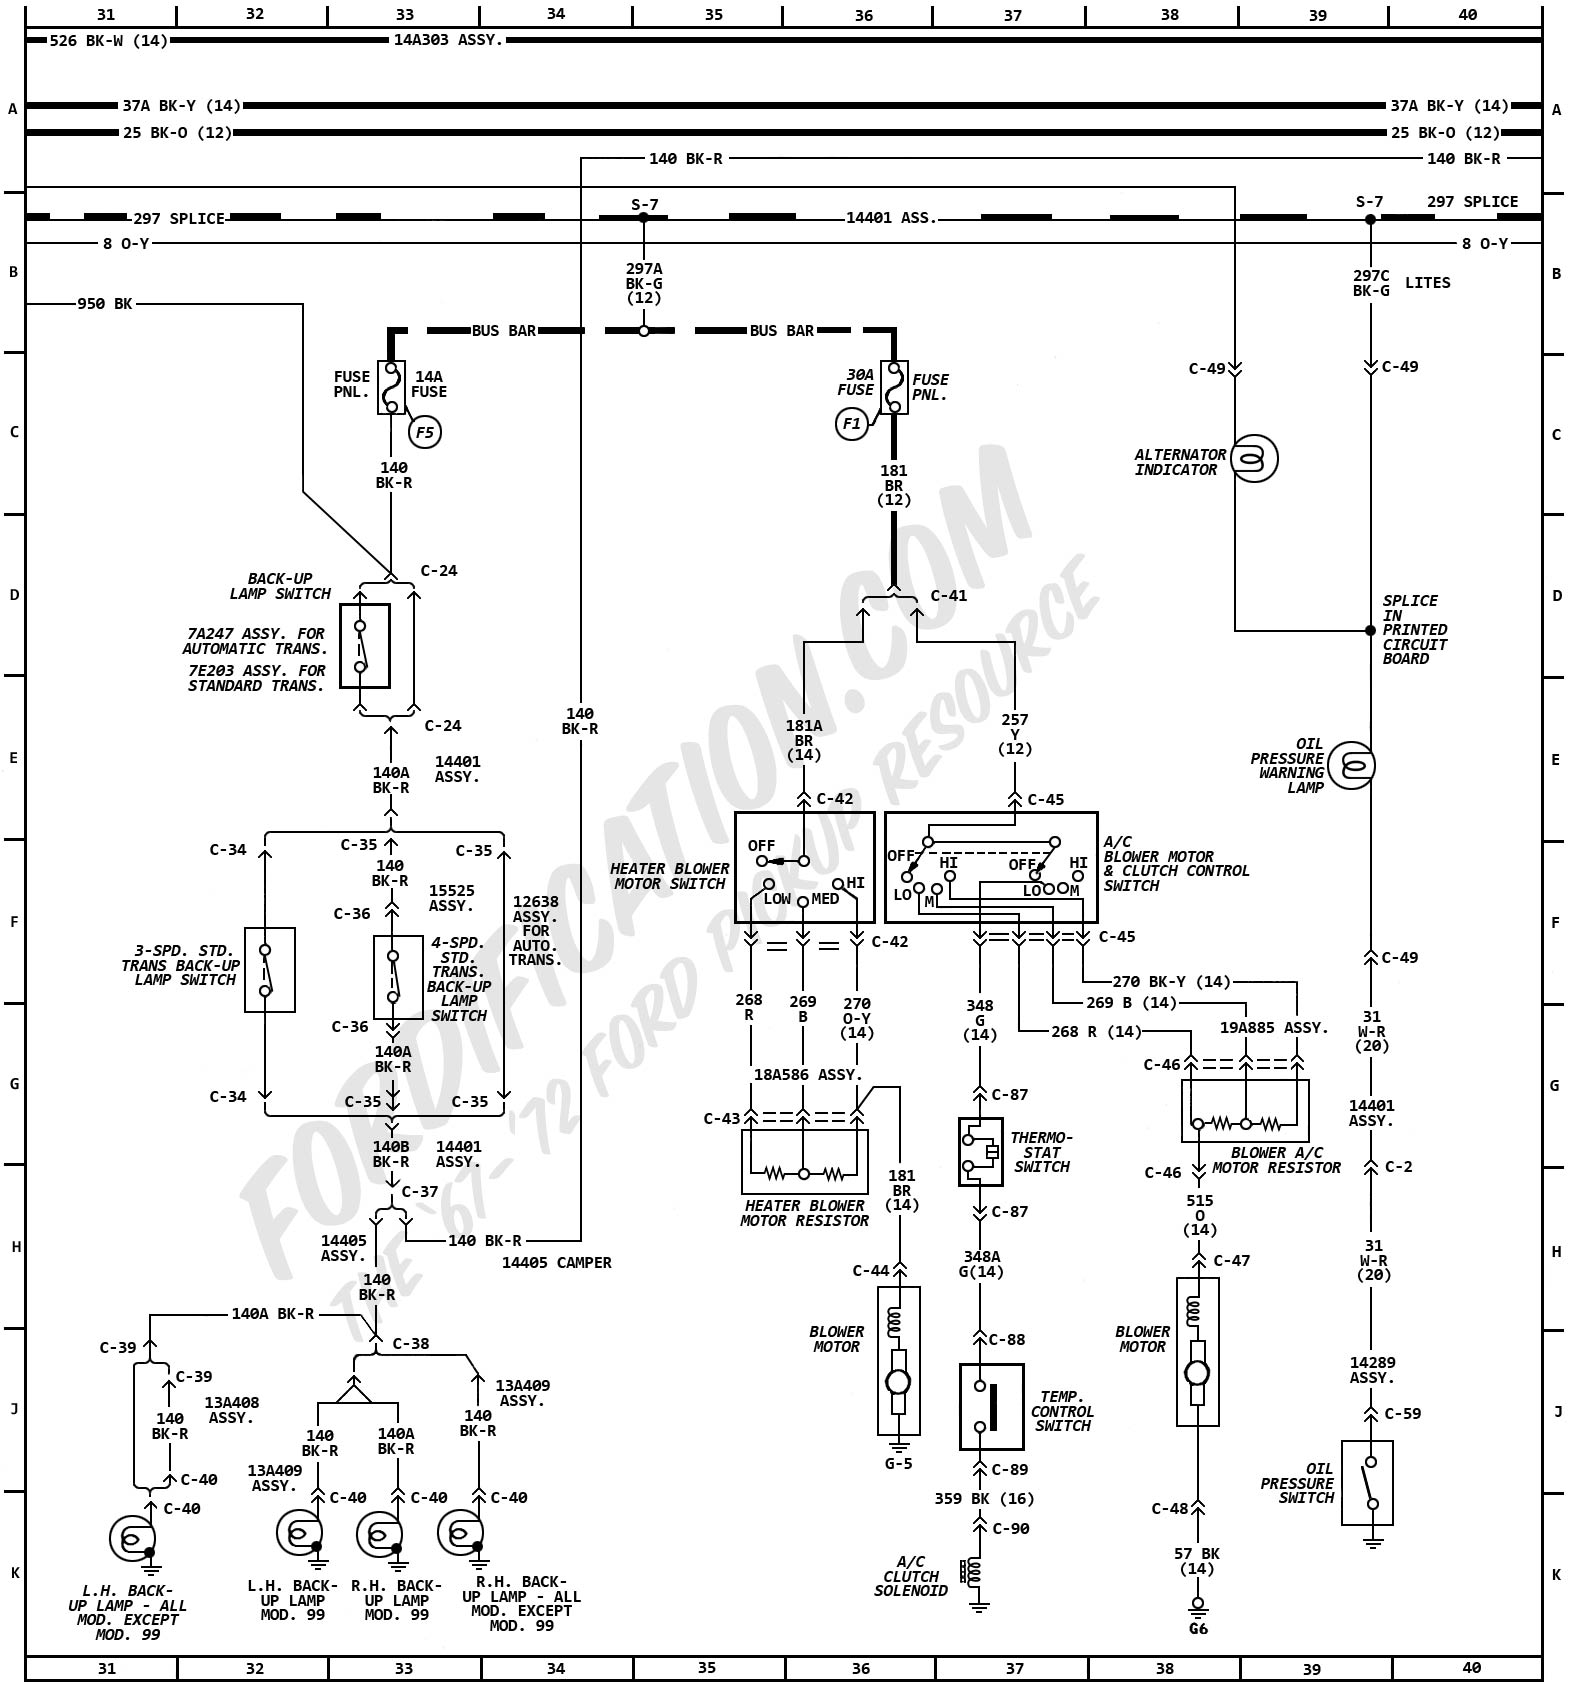 71 F250 Wiring Diagram Will Be A Thing 1973 Ford F 250 4x4 72 Diagrams Schematic Rh Theodocle Fion Com 73l F100